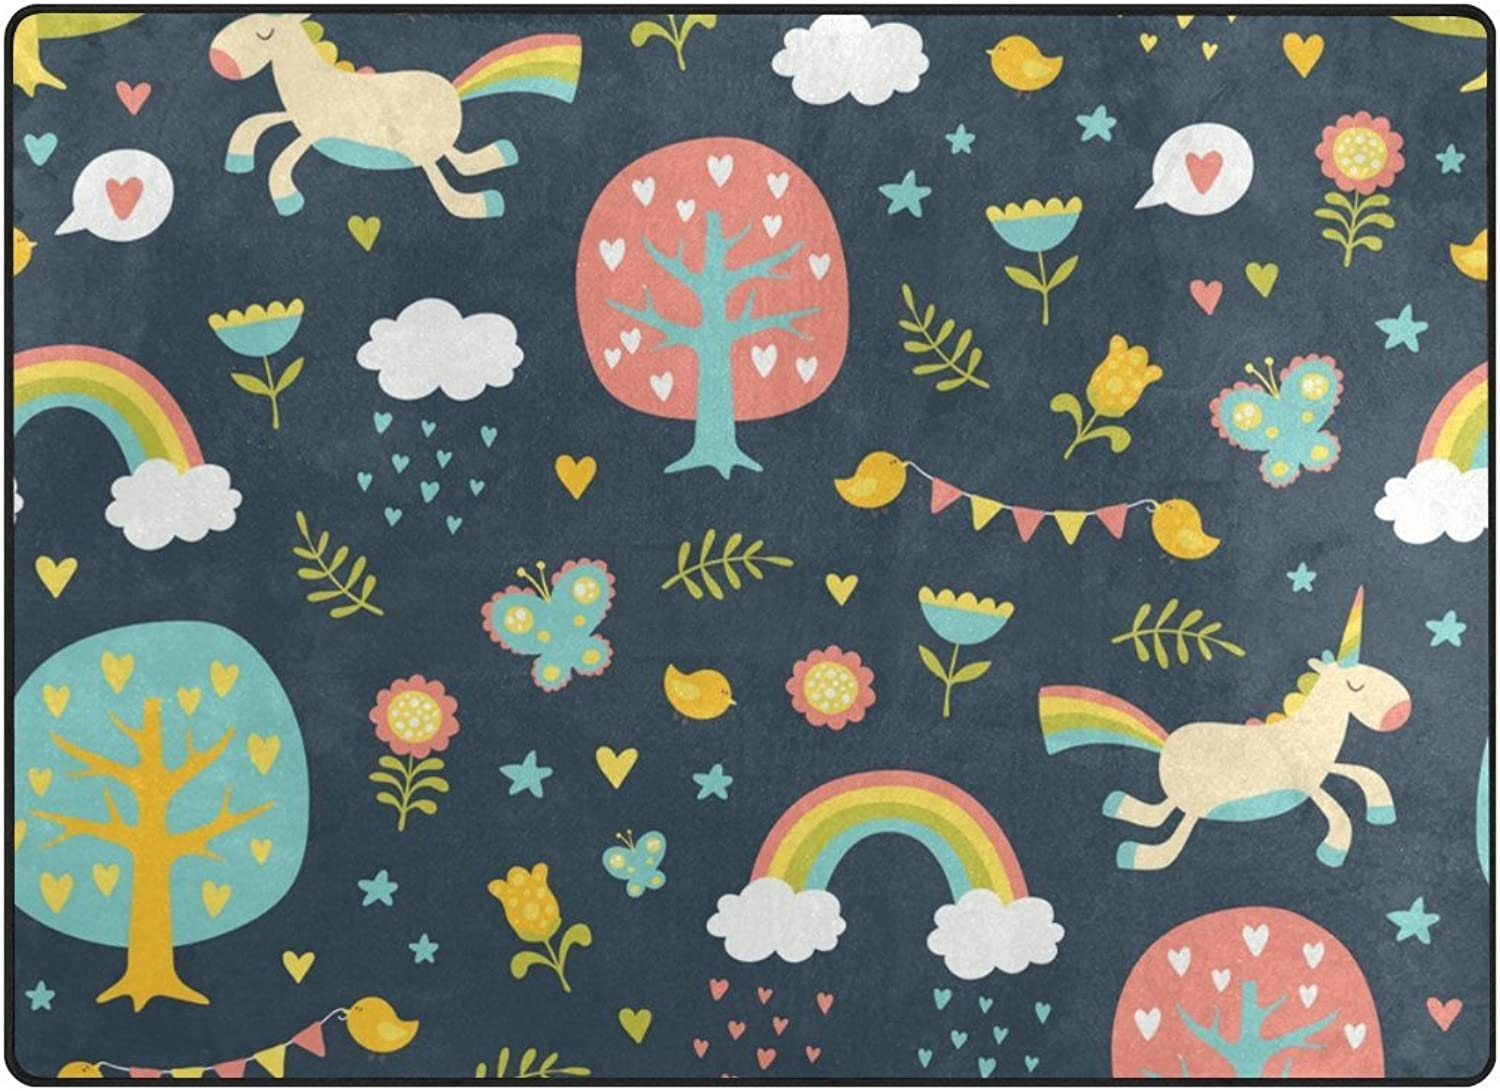 SUABO 80 x 58 inches Area Rug Non-Slip Floor Mat Cute Unicorns Printed Doormats for Living Room Bedroom